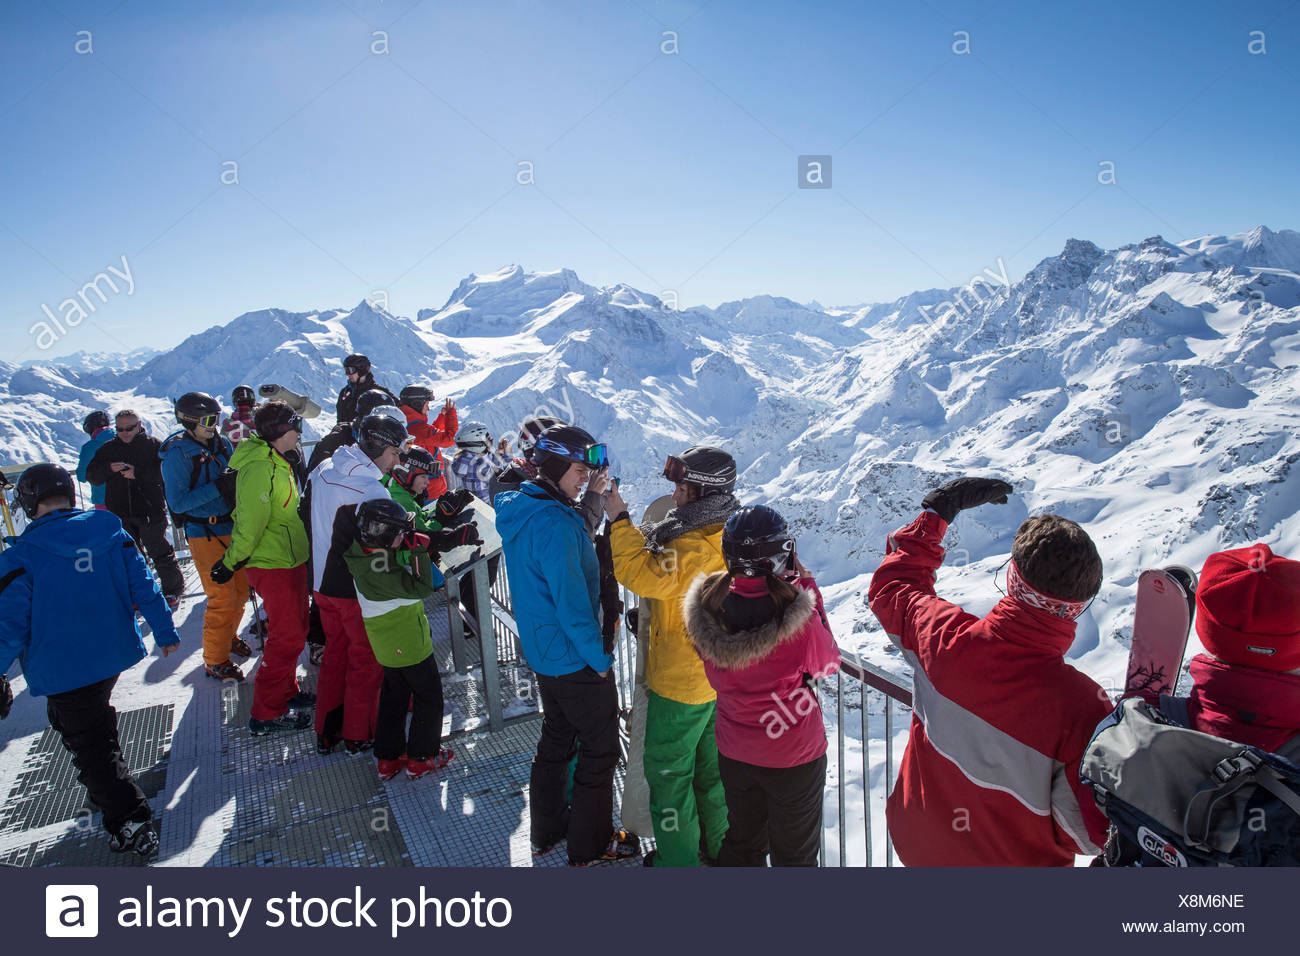 Mont fort, view, Mont fort, Grand Combin, winter, canton, VS, Valais, mountain, mountains, mountain road, Switzerland, Europe, p - Stock Image